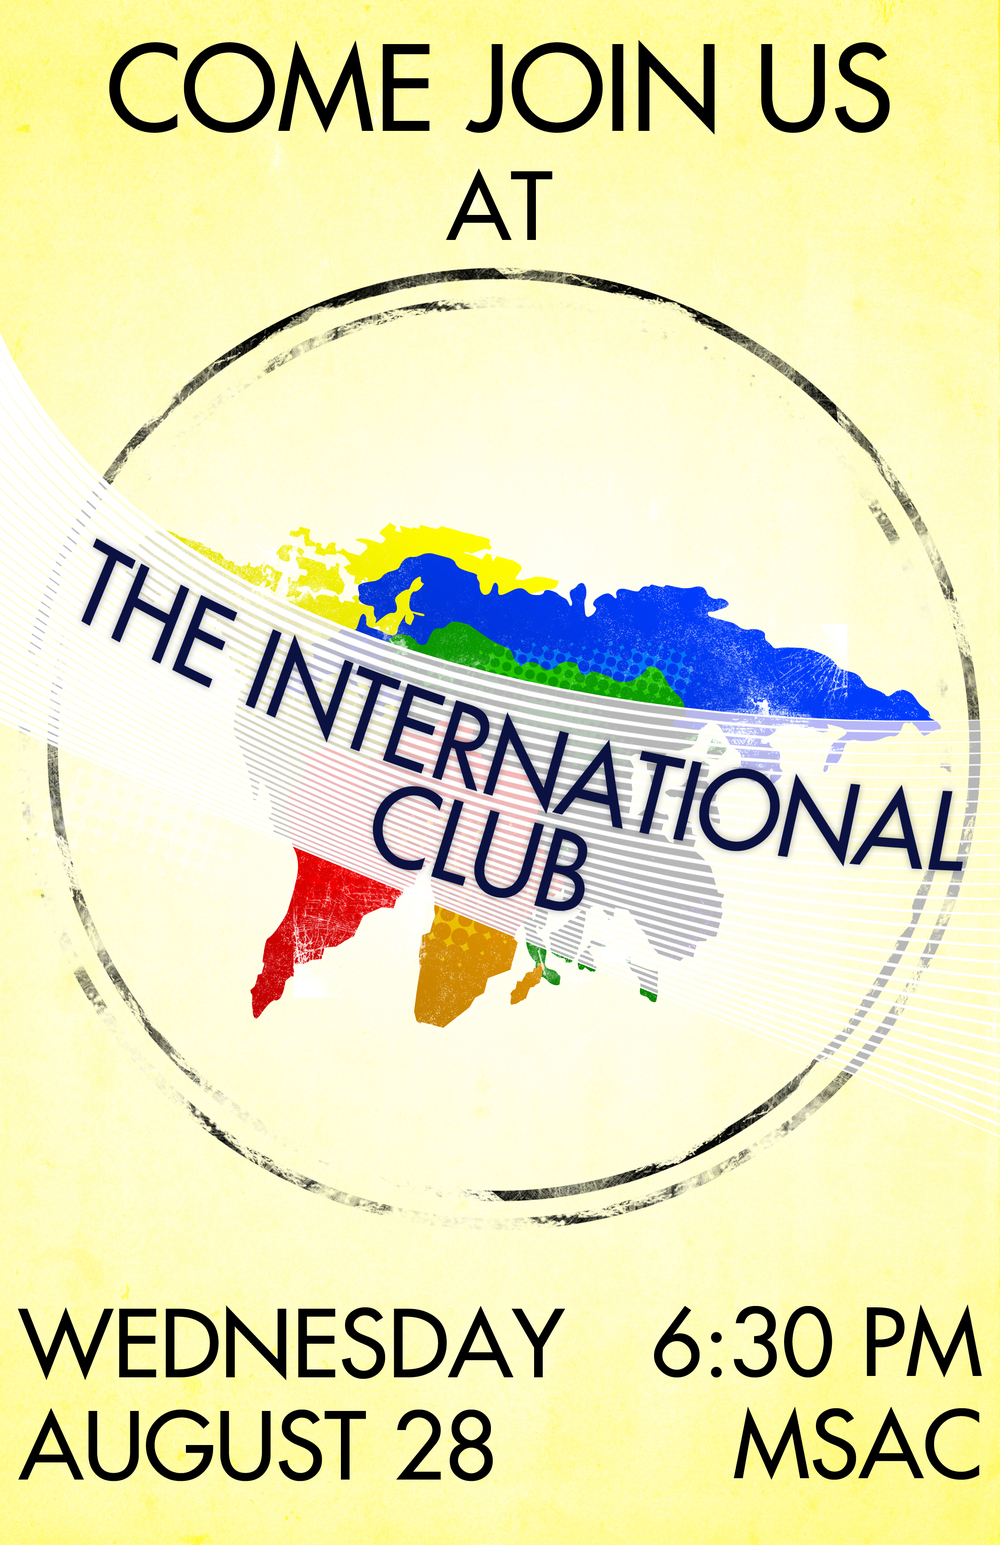 International Club.jpg